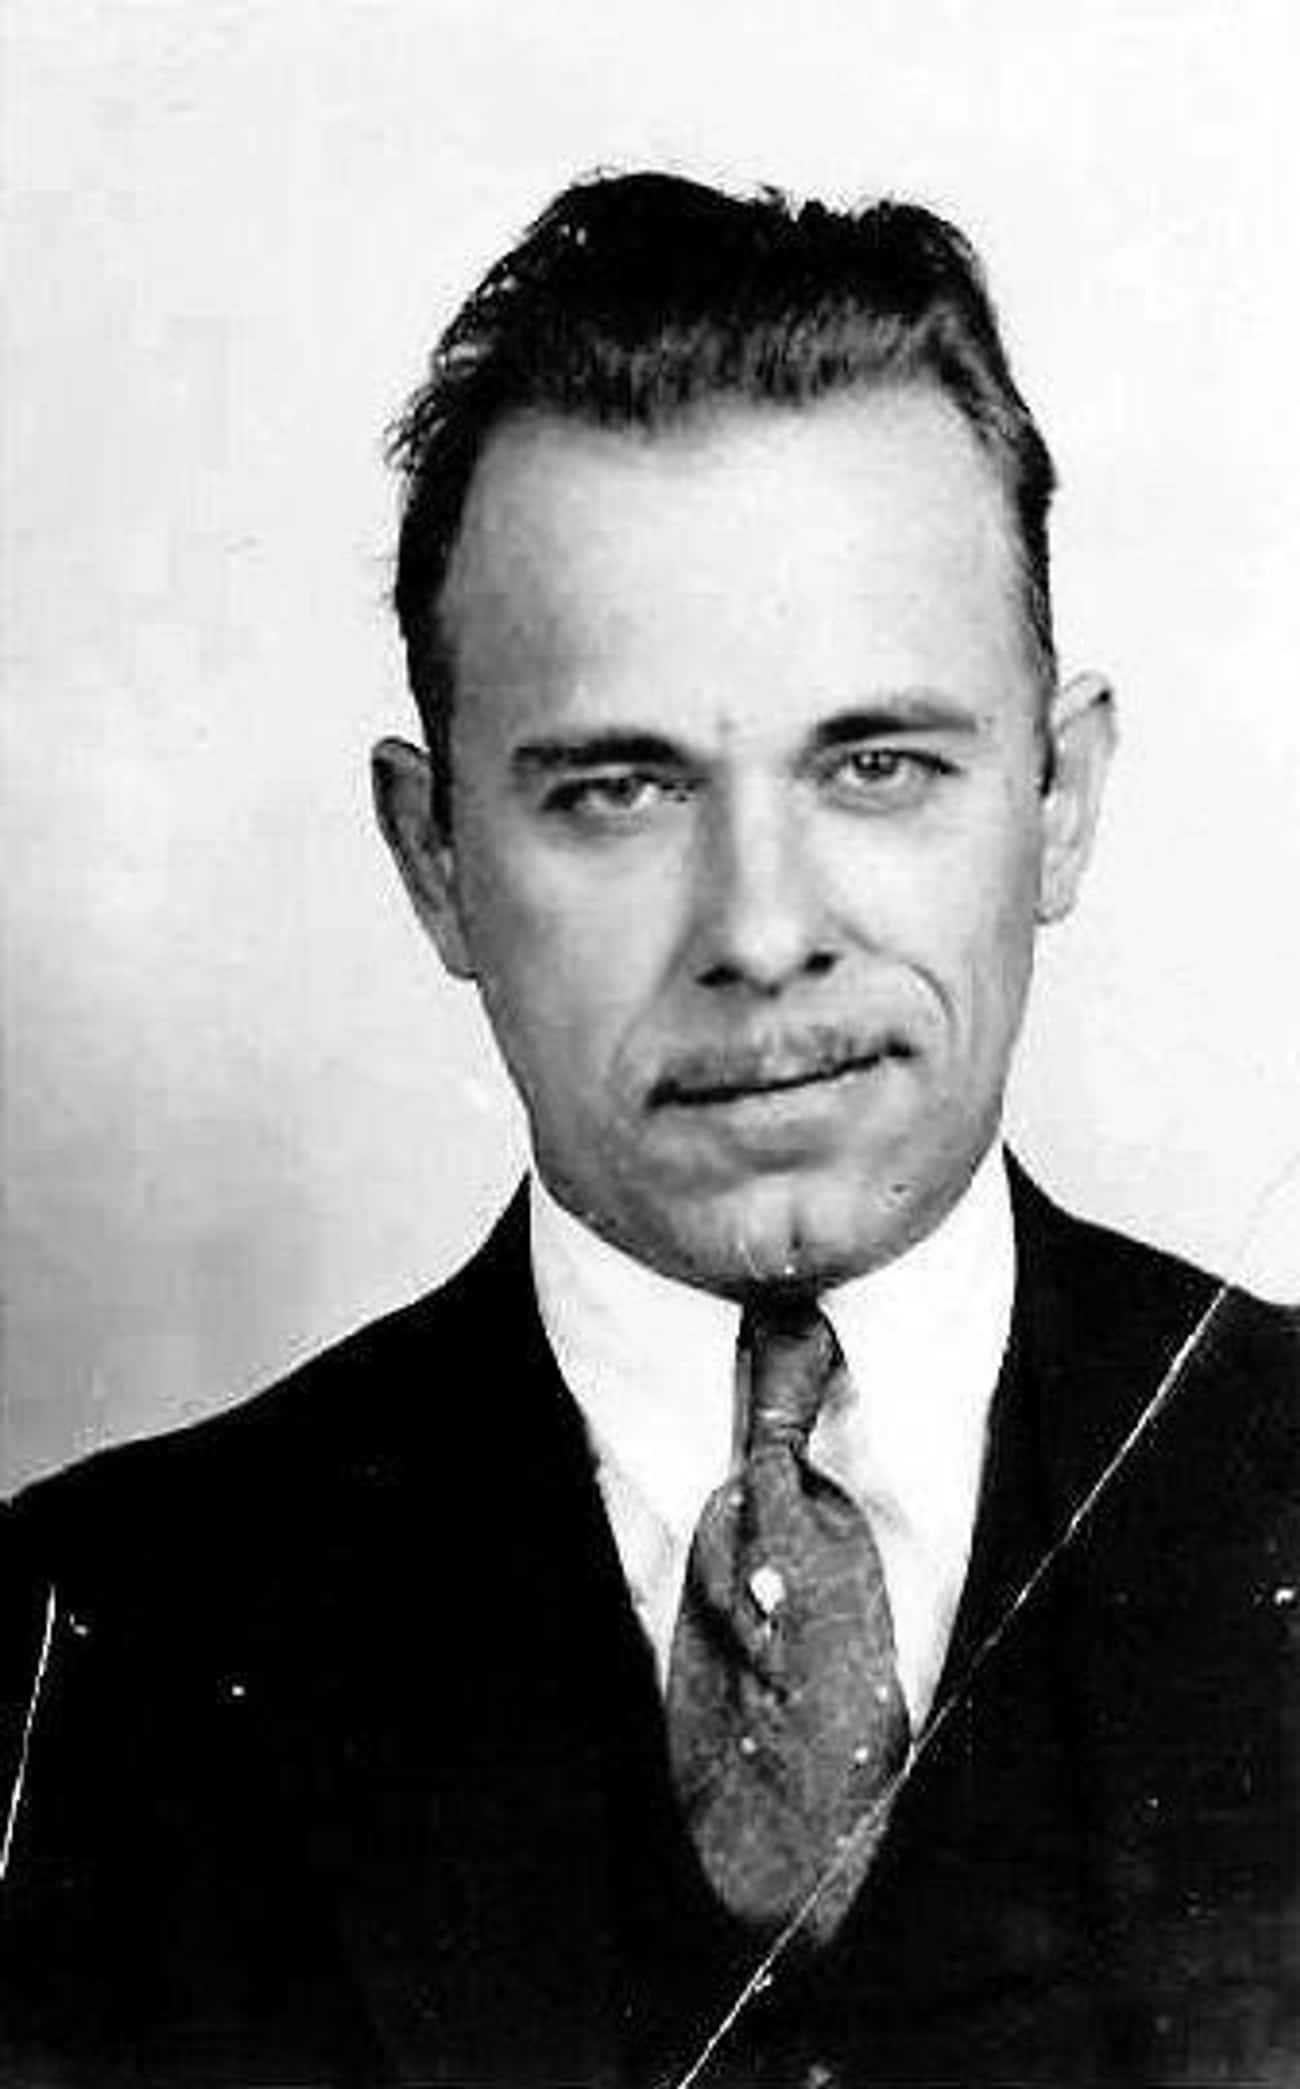 John Dillinger - Larger Than Life, Even In Death